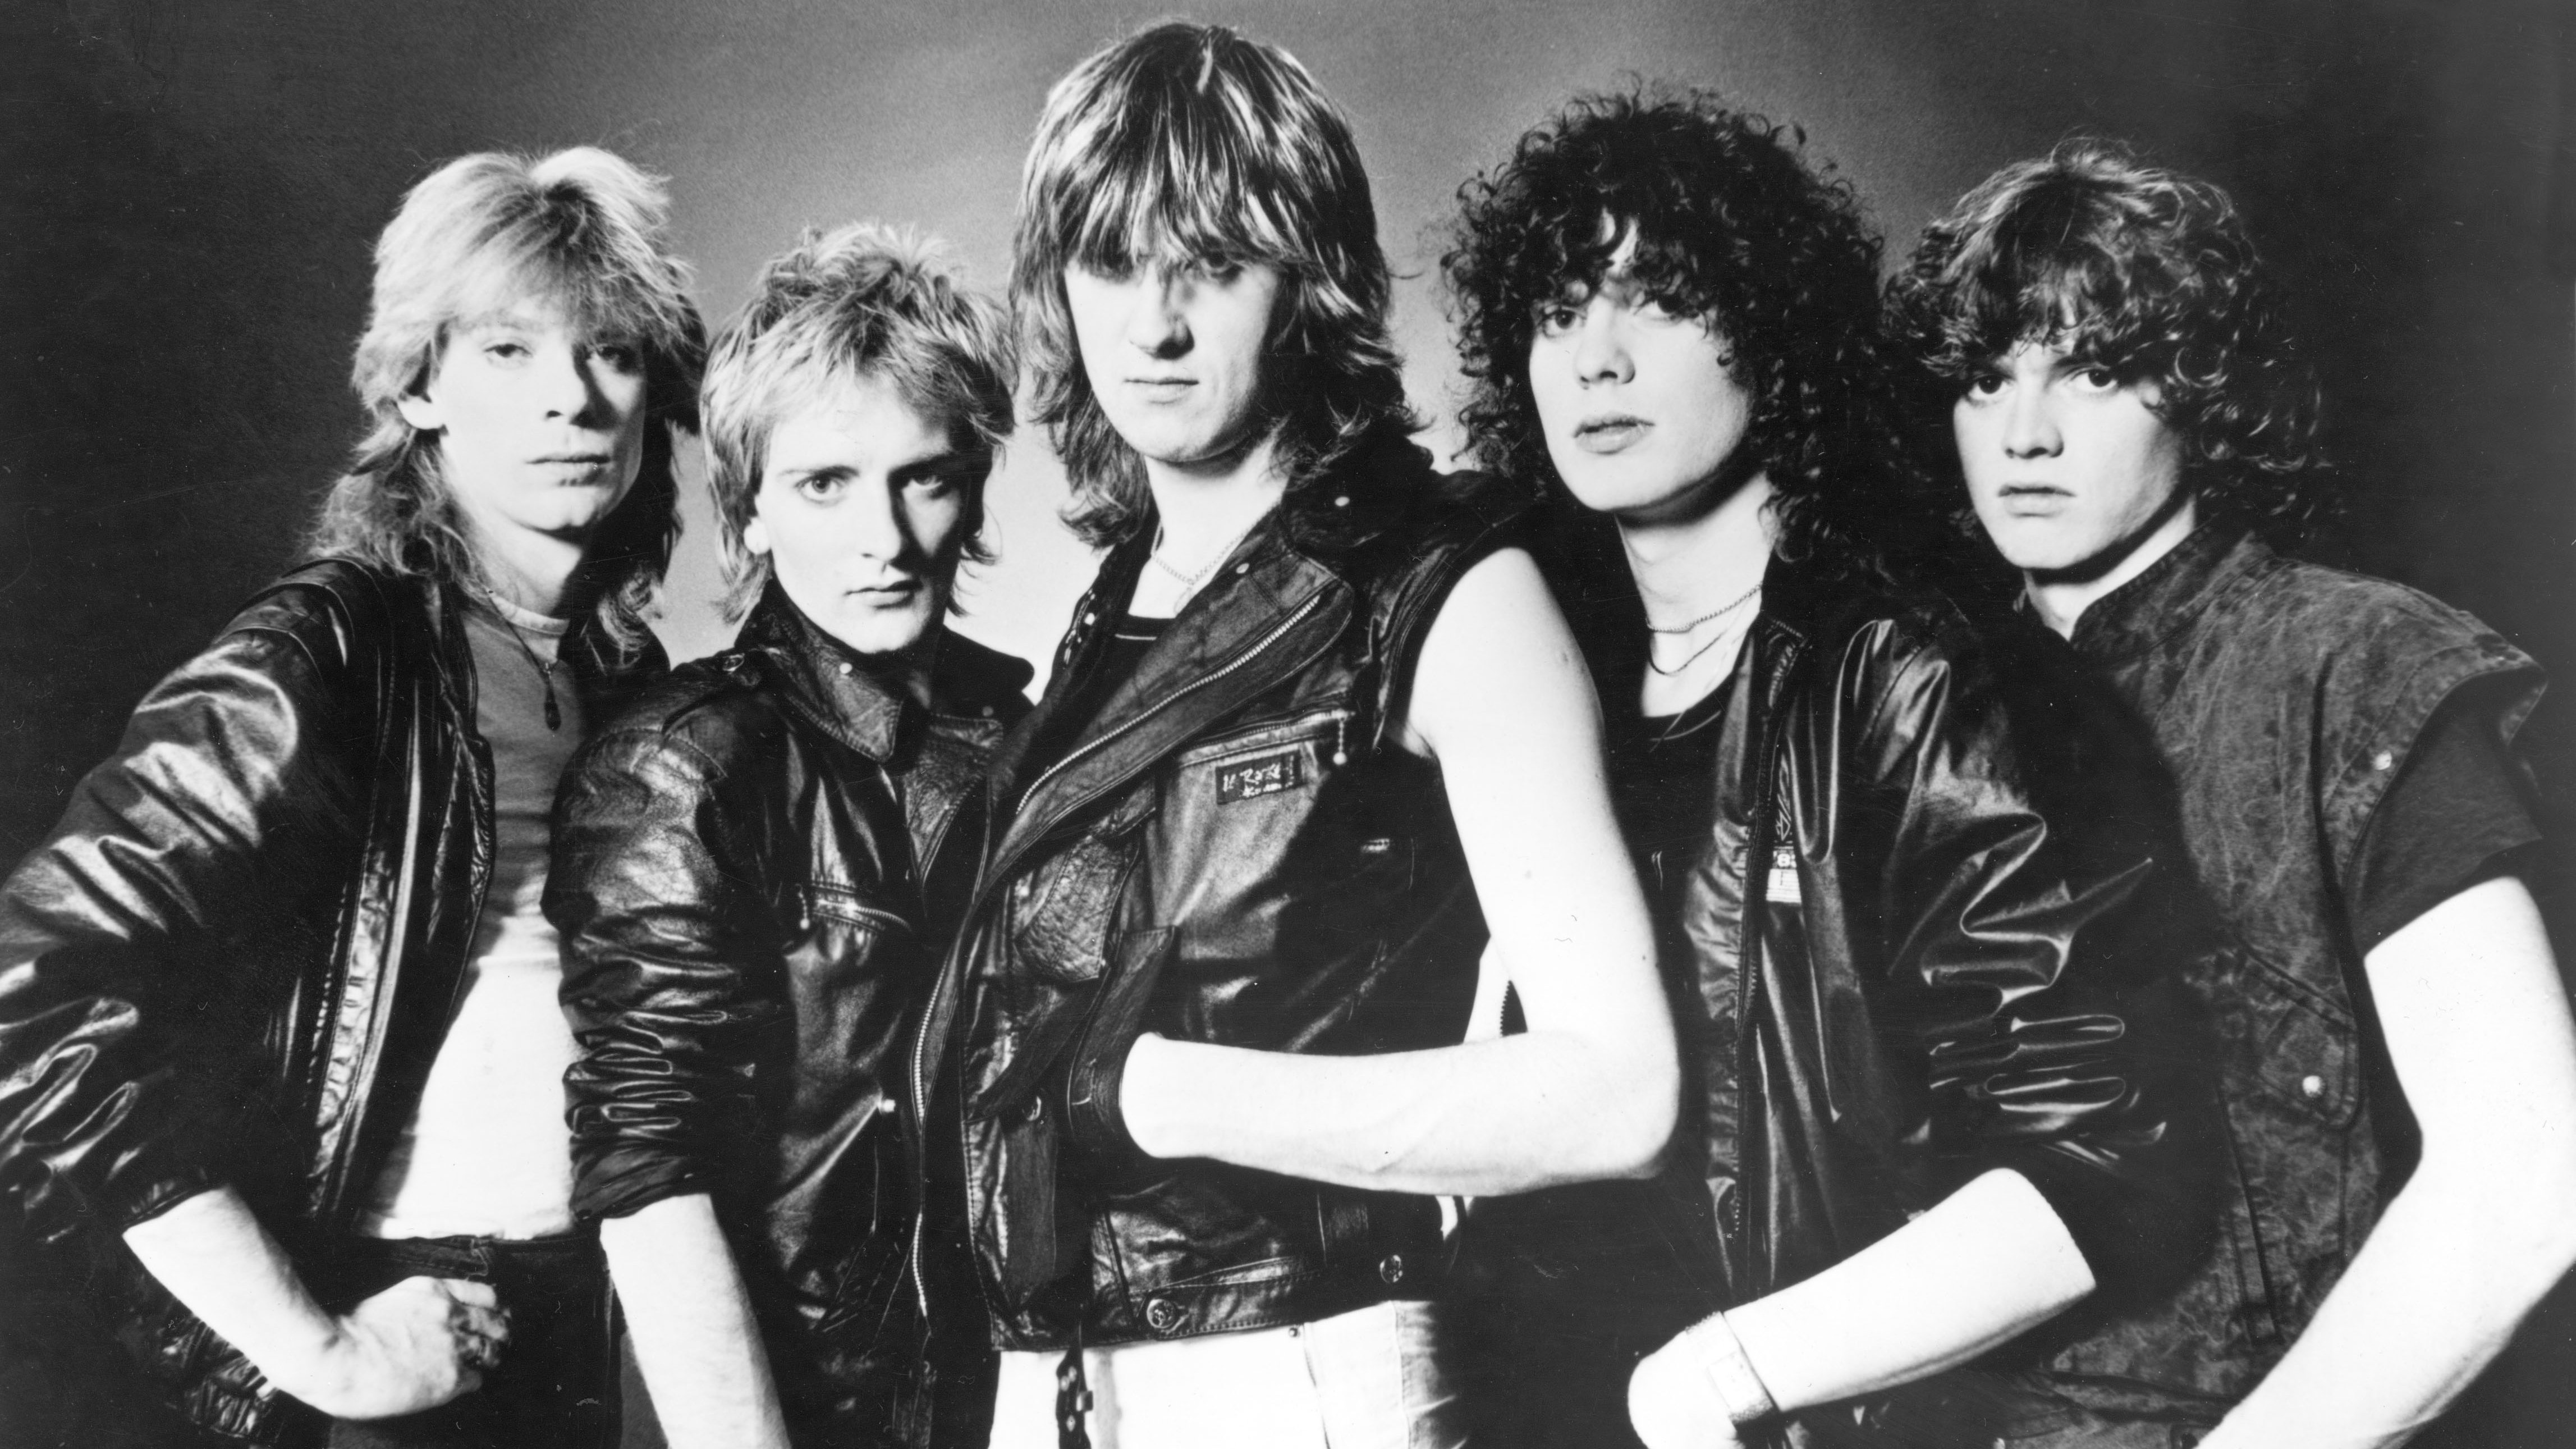 F*ck The Haters: Here's 7 Reasons Why Def Leppard's